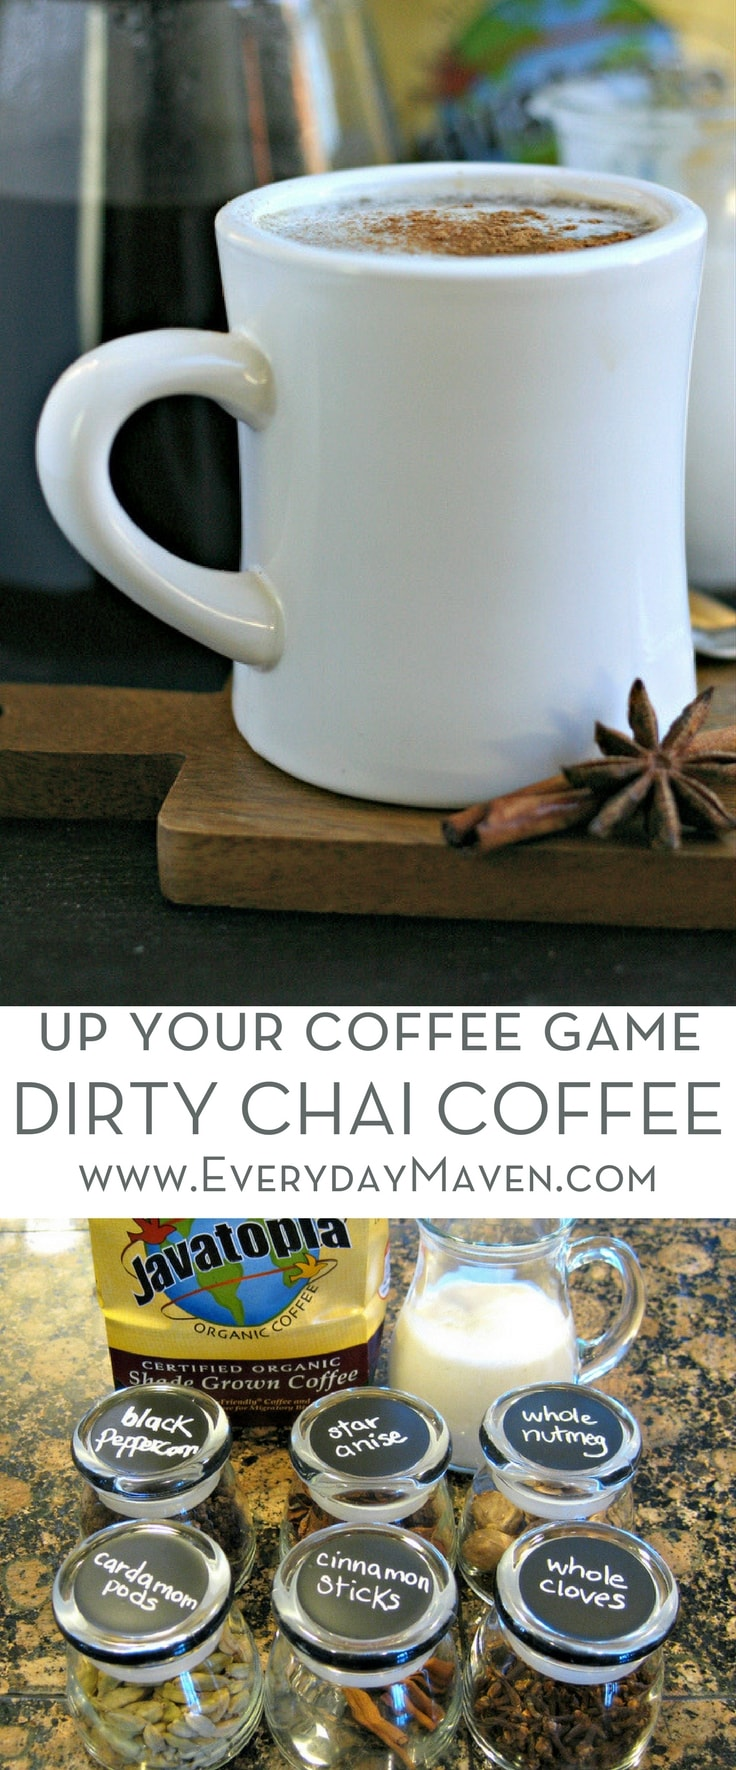 My Dirty Chai Coffee Recipe combines freshly ground Chai Tea spices with brewed coffee to make one of the most aromatic and flavorful cups of Joe! Made in partnership with Fred Meyer